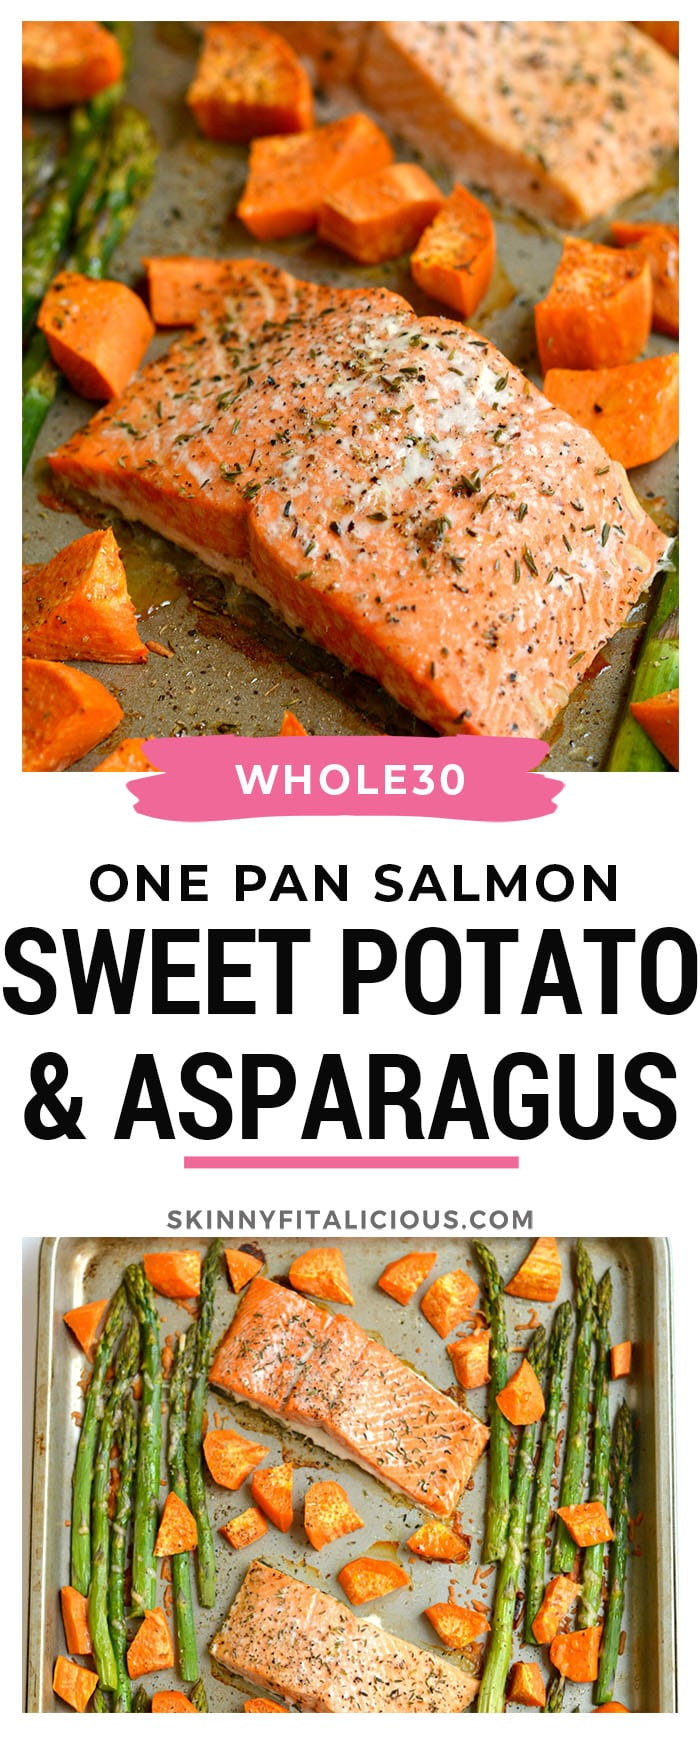 This One Pan Baked Salmon Asparagus & Sweet Potato is perfectly baked on a single pan for an EASY and filling dinner. A Whole30, Paleo, Gluten Free & Low Calorie meal that takes just 30 minutes, ideal for any night!